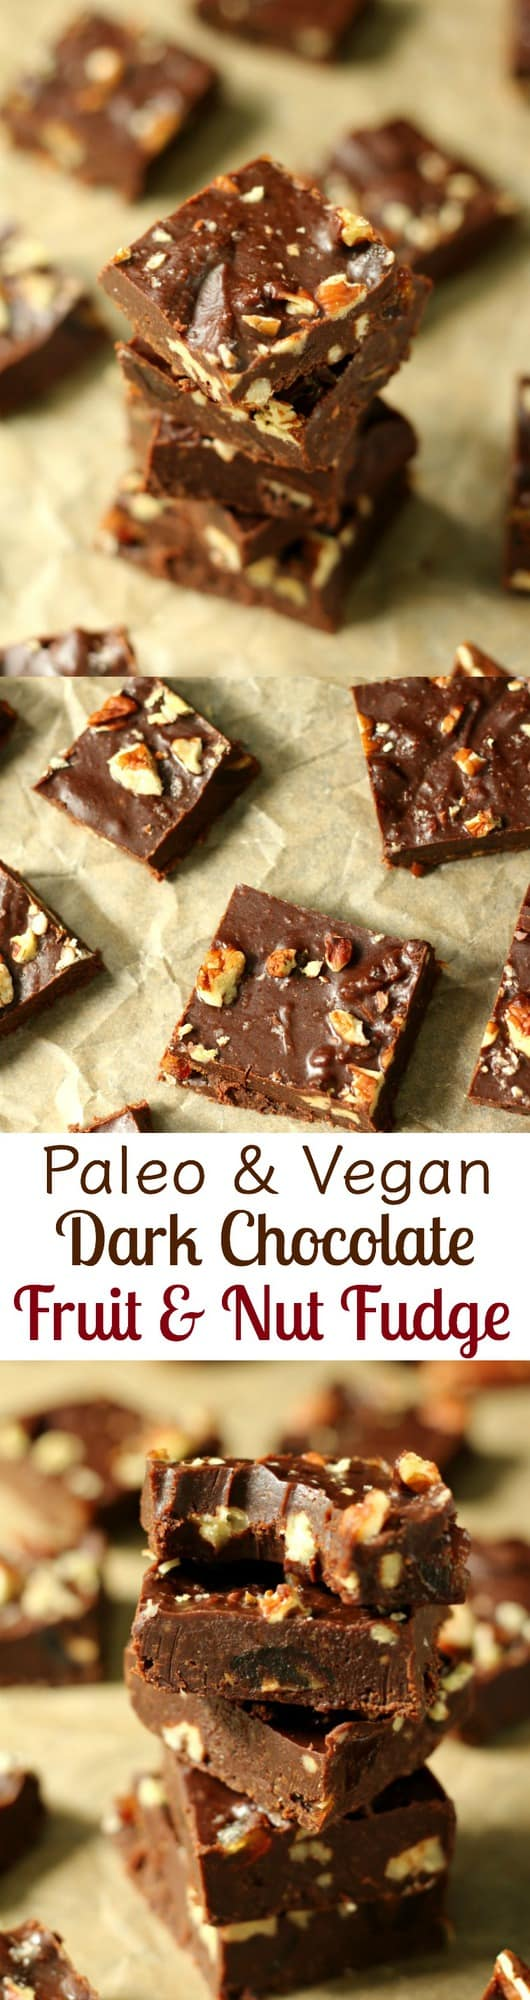 paleo and vegan dark chocolate fruit and nut fudge - dates and pecans plus deep dark creamy fudge that's made with healthy ingredients!